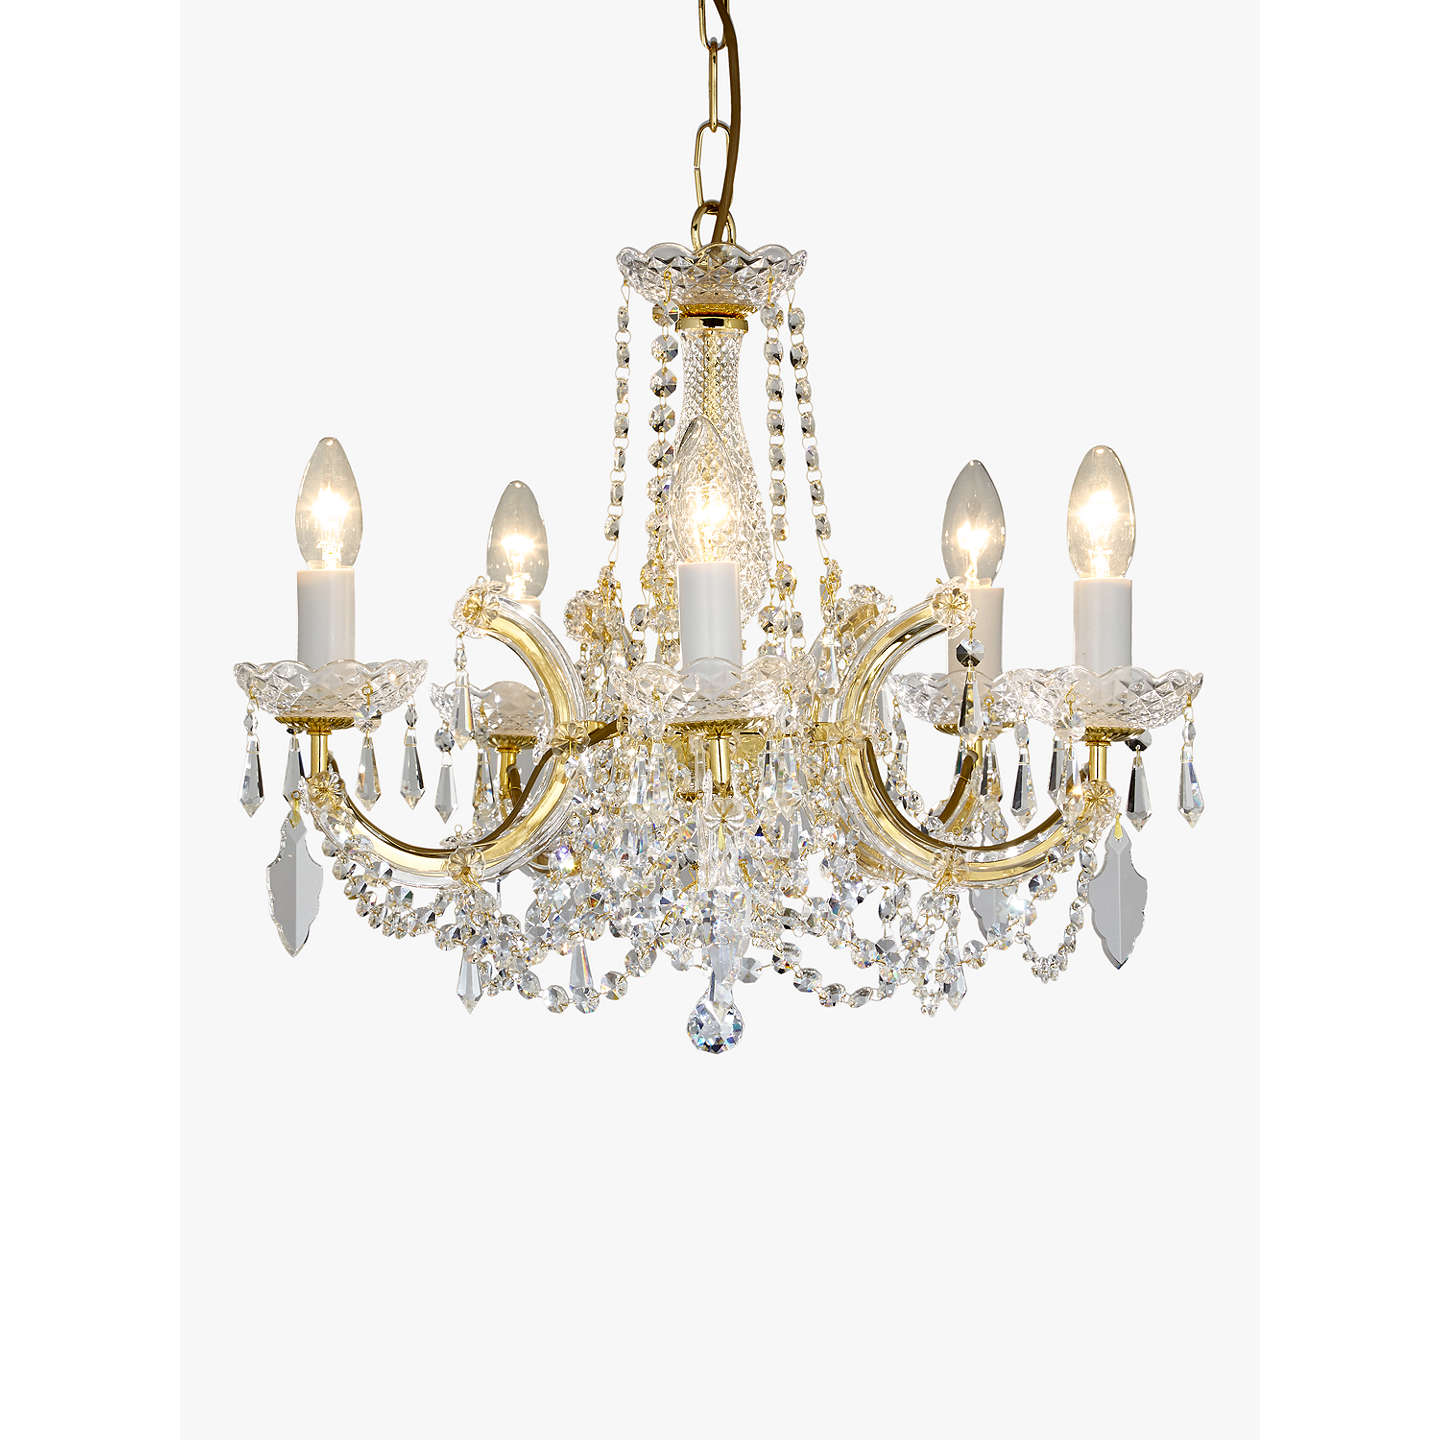 Impex marie theresa chandelier 5 arm cleargold at john lewis buyimpex marie theresa chandelier 5 arm cleargold online at johnlewis aloadofball Image collections